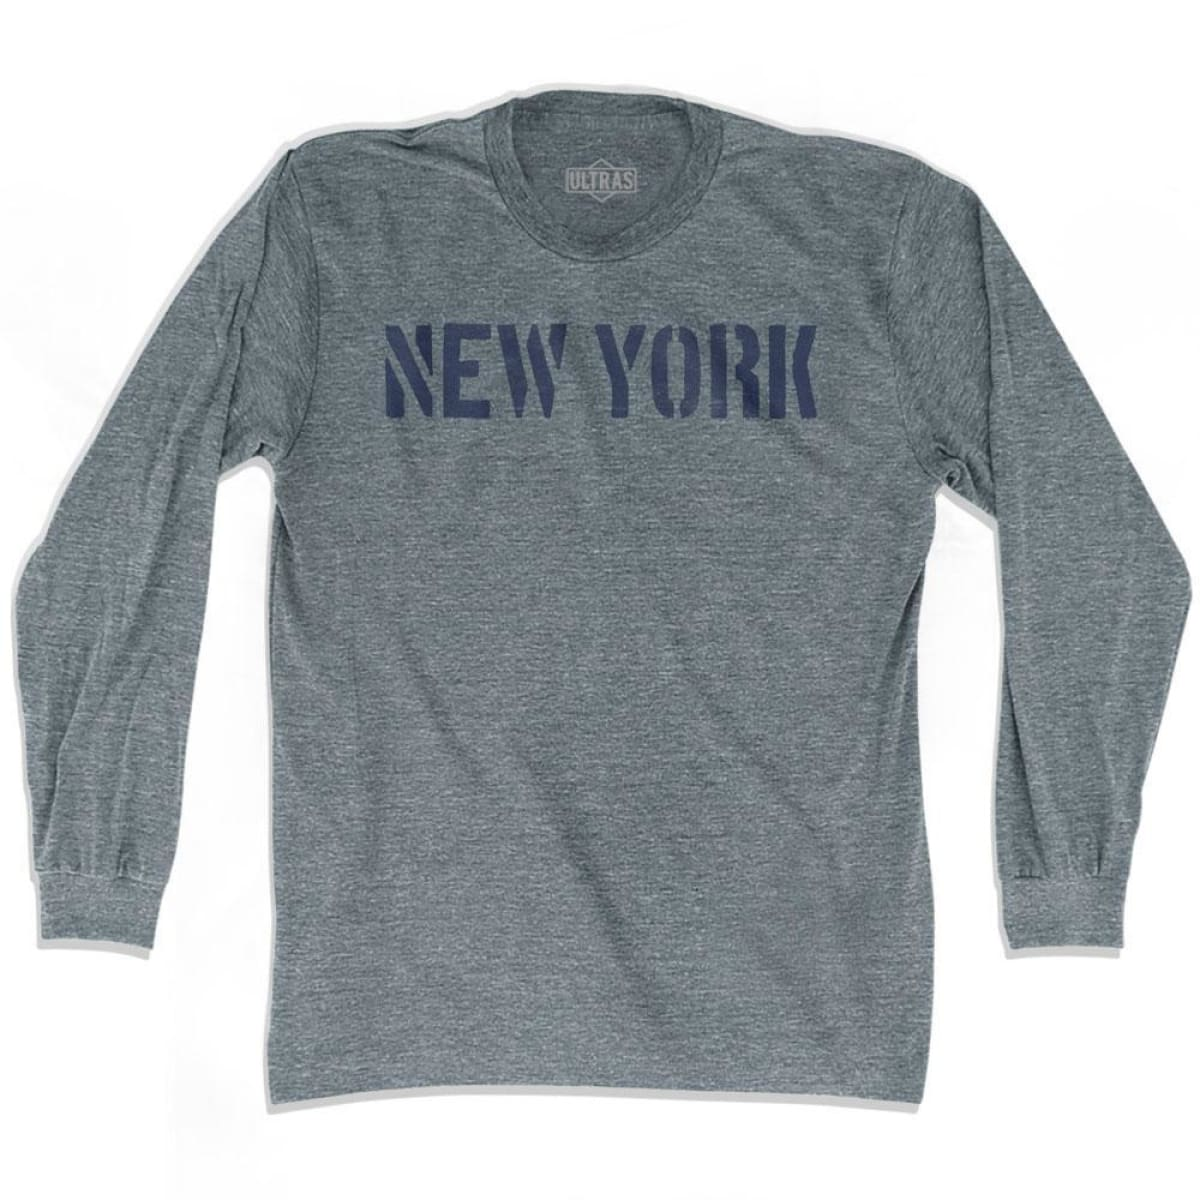 New York State Stencil Adult Tri-Blend Long Sleeve T-shirt - Athletic Grey / Adult Small - Stencil State